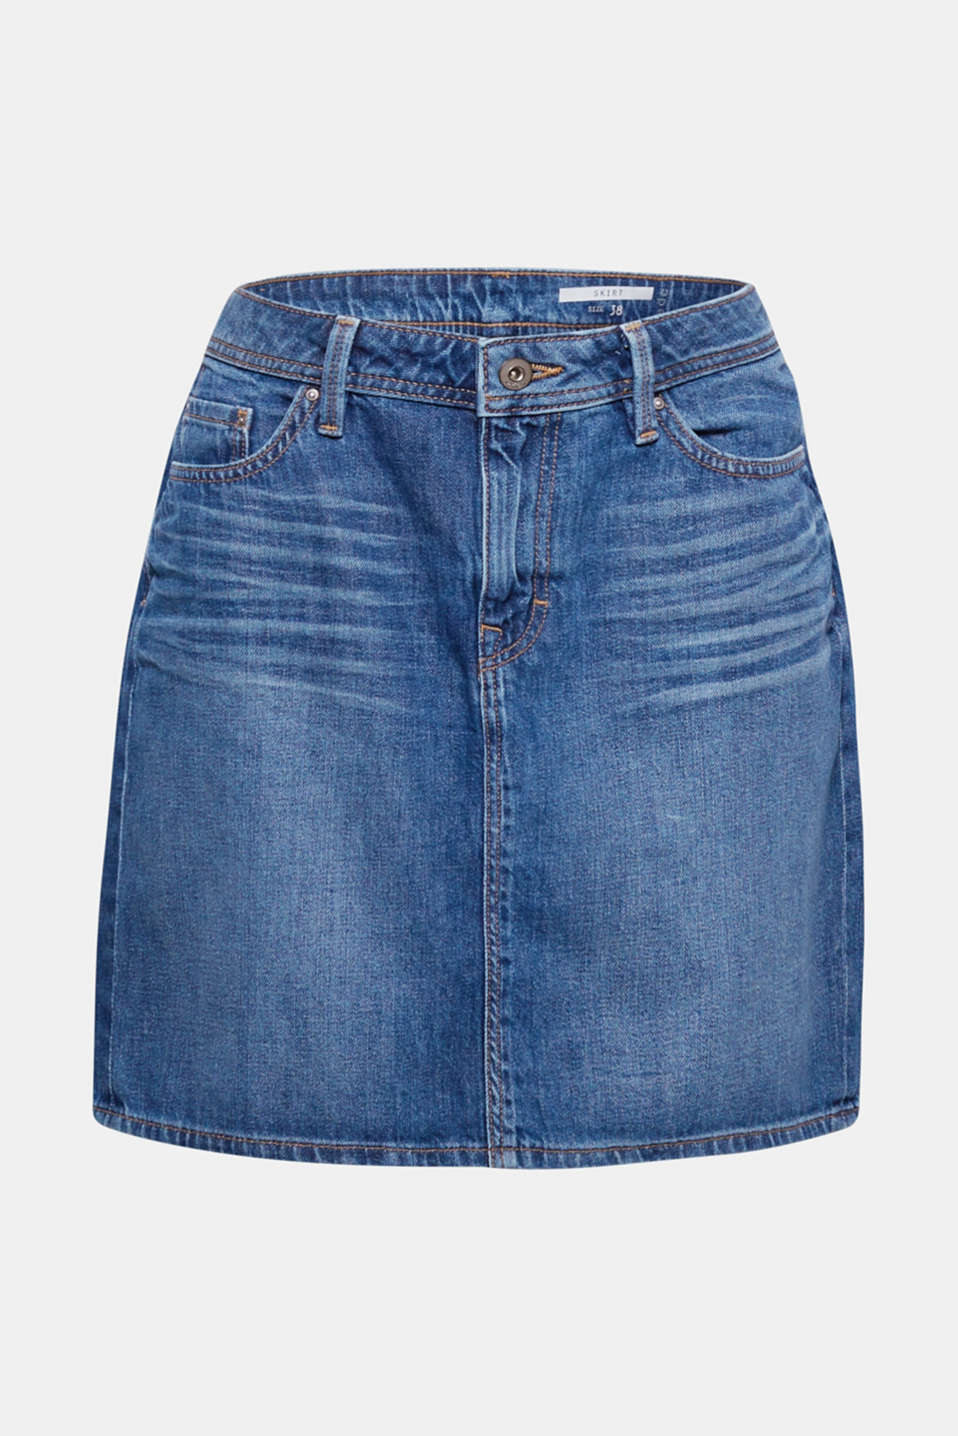 Our favourite style for lots of looks: denim skirt in pure cotton with casual washed-out effects.